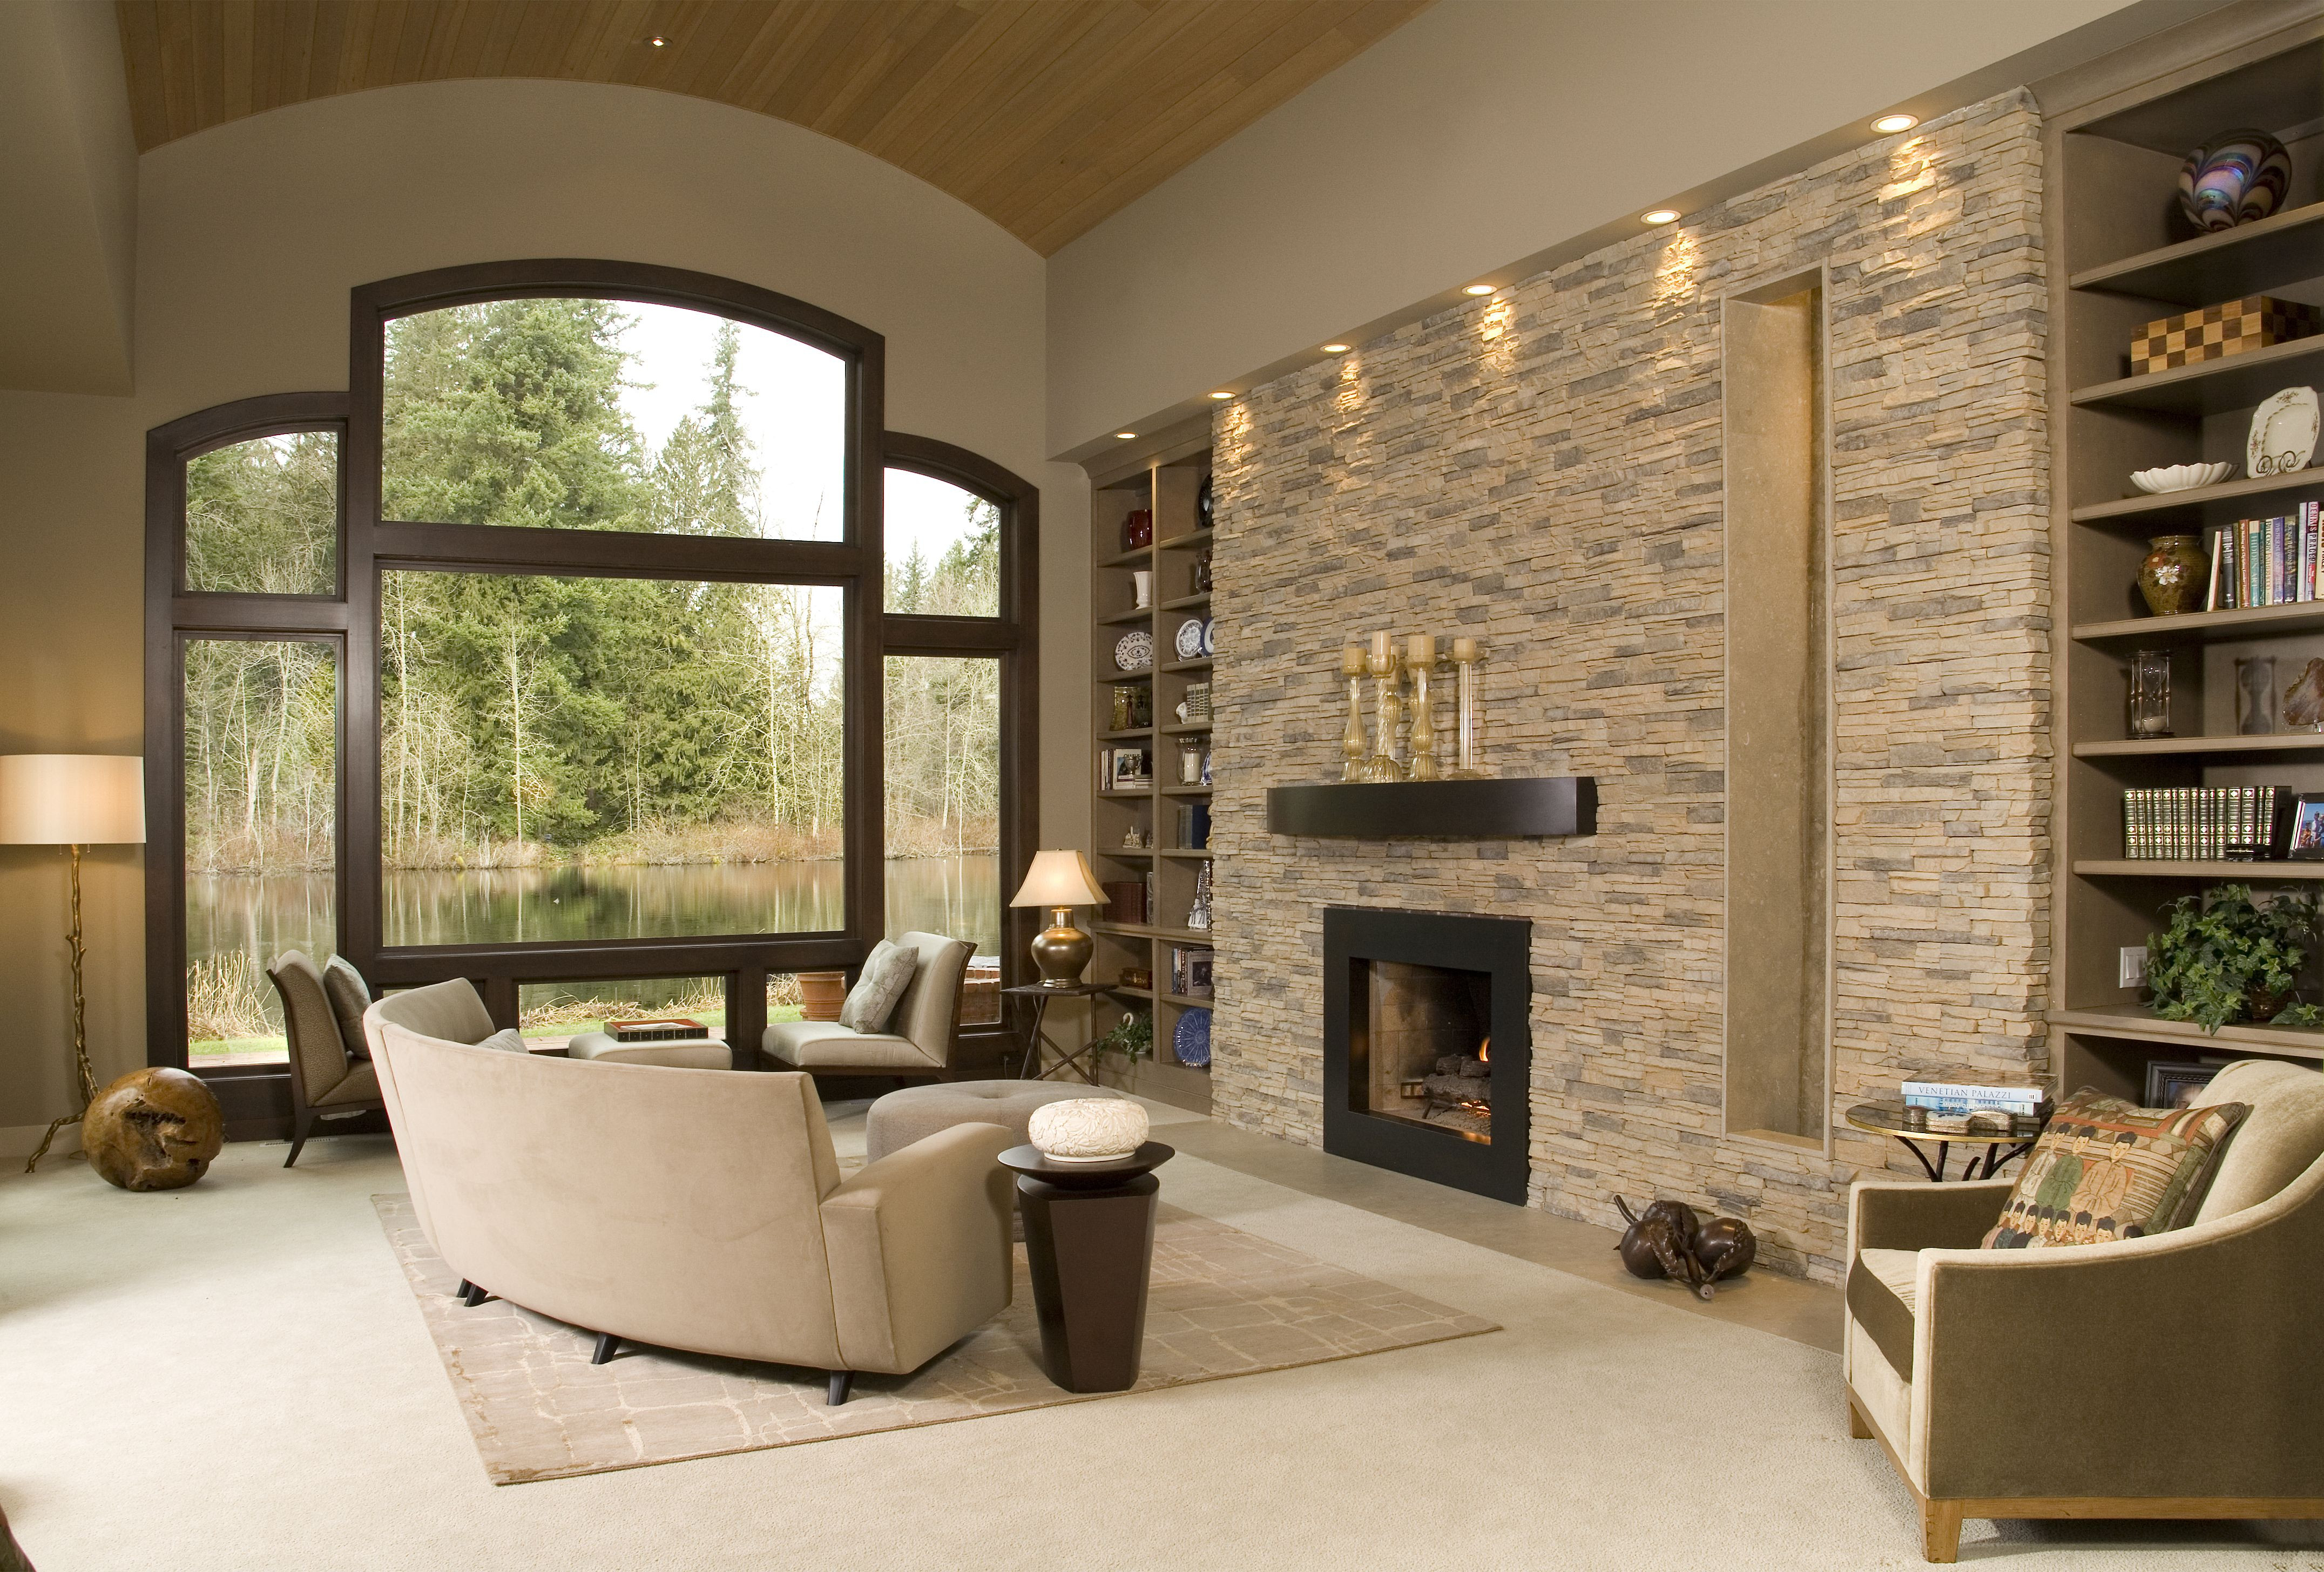 Best ideas about Stacked Stone Accent Wall . Save or Pin Eldorado Stone Accent Wall Alderwood Stacked Stone Now.